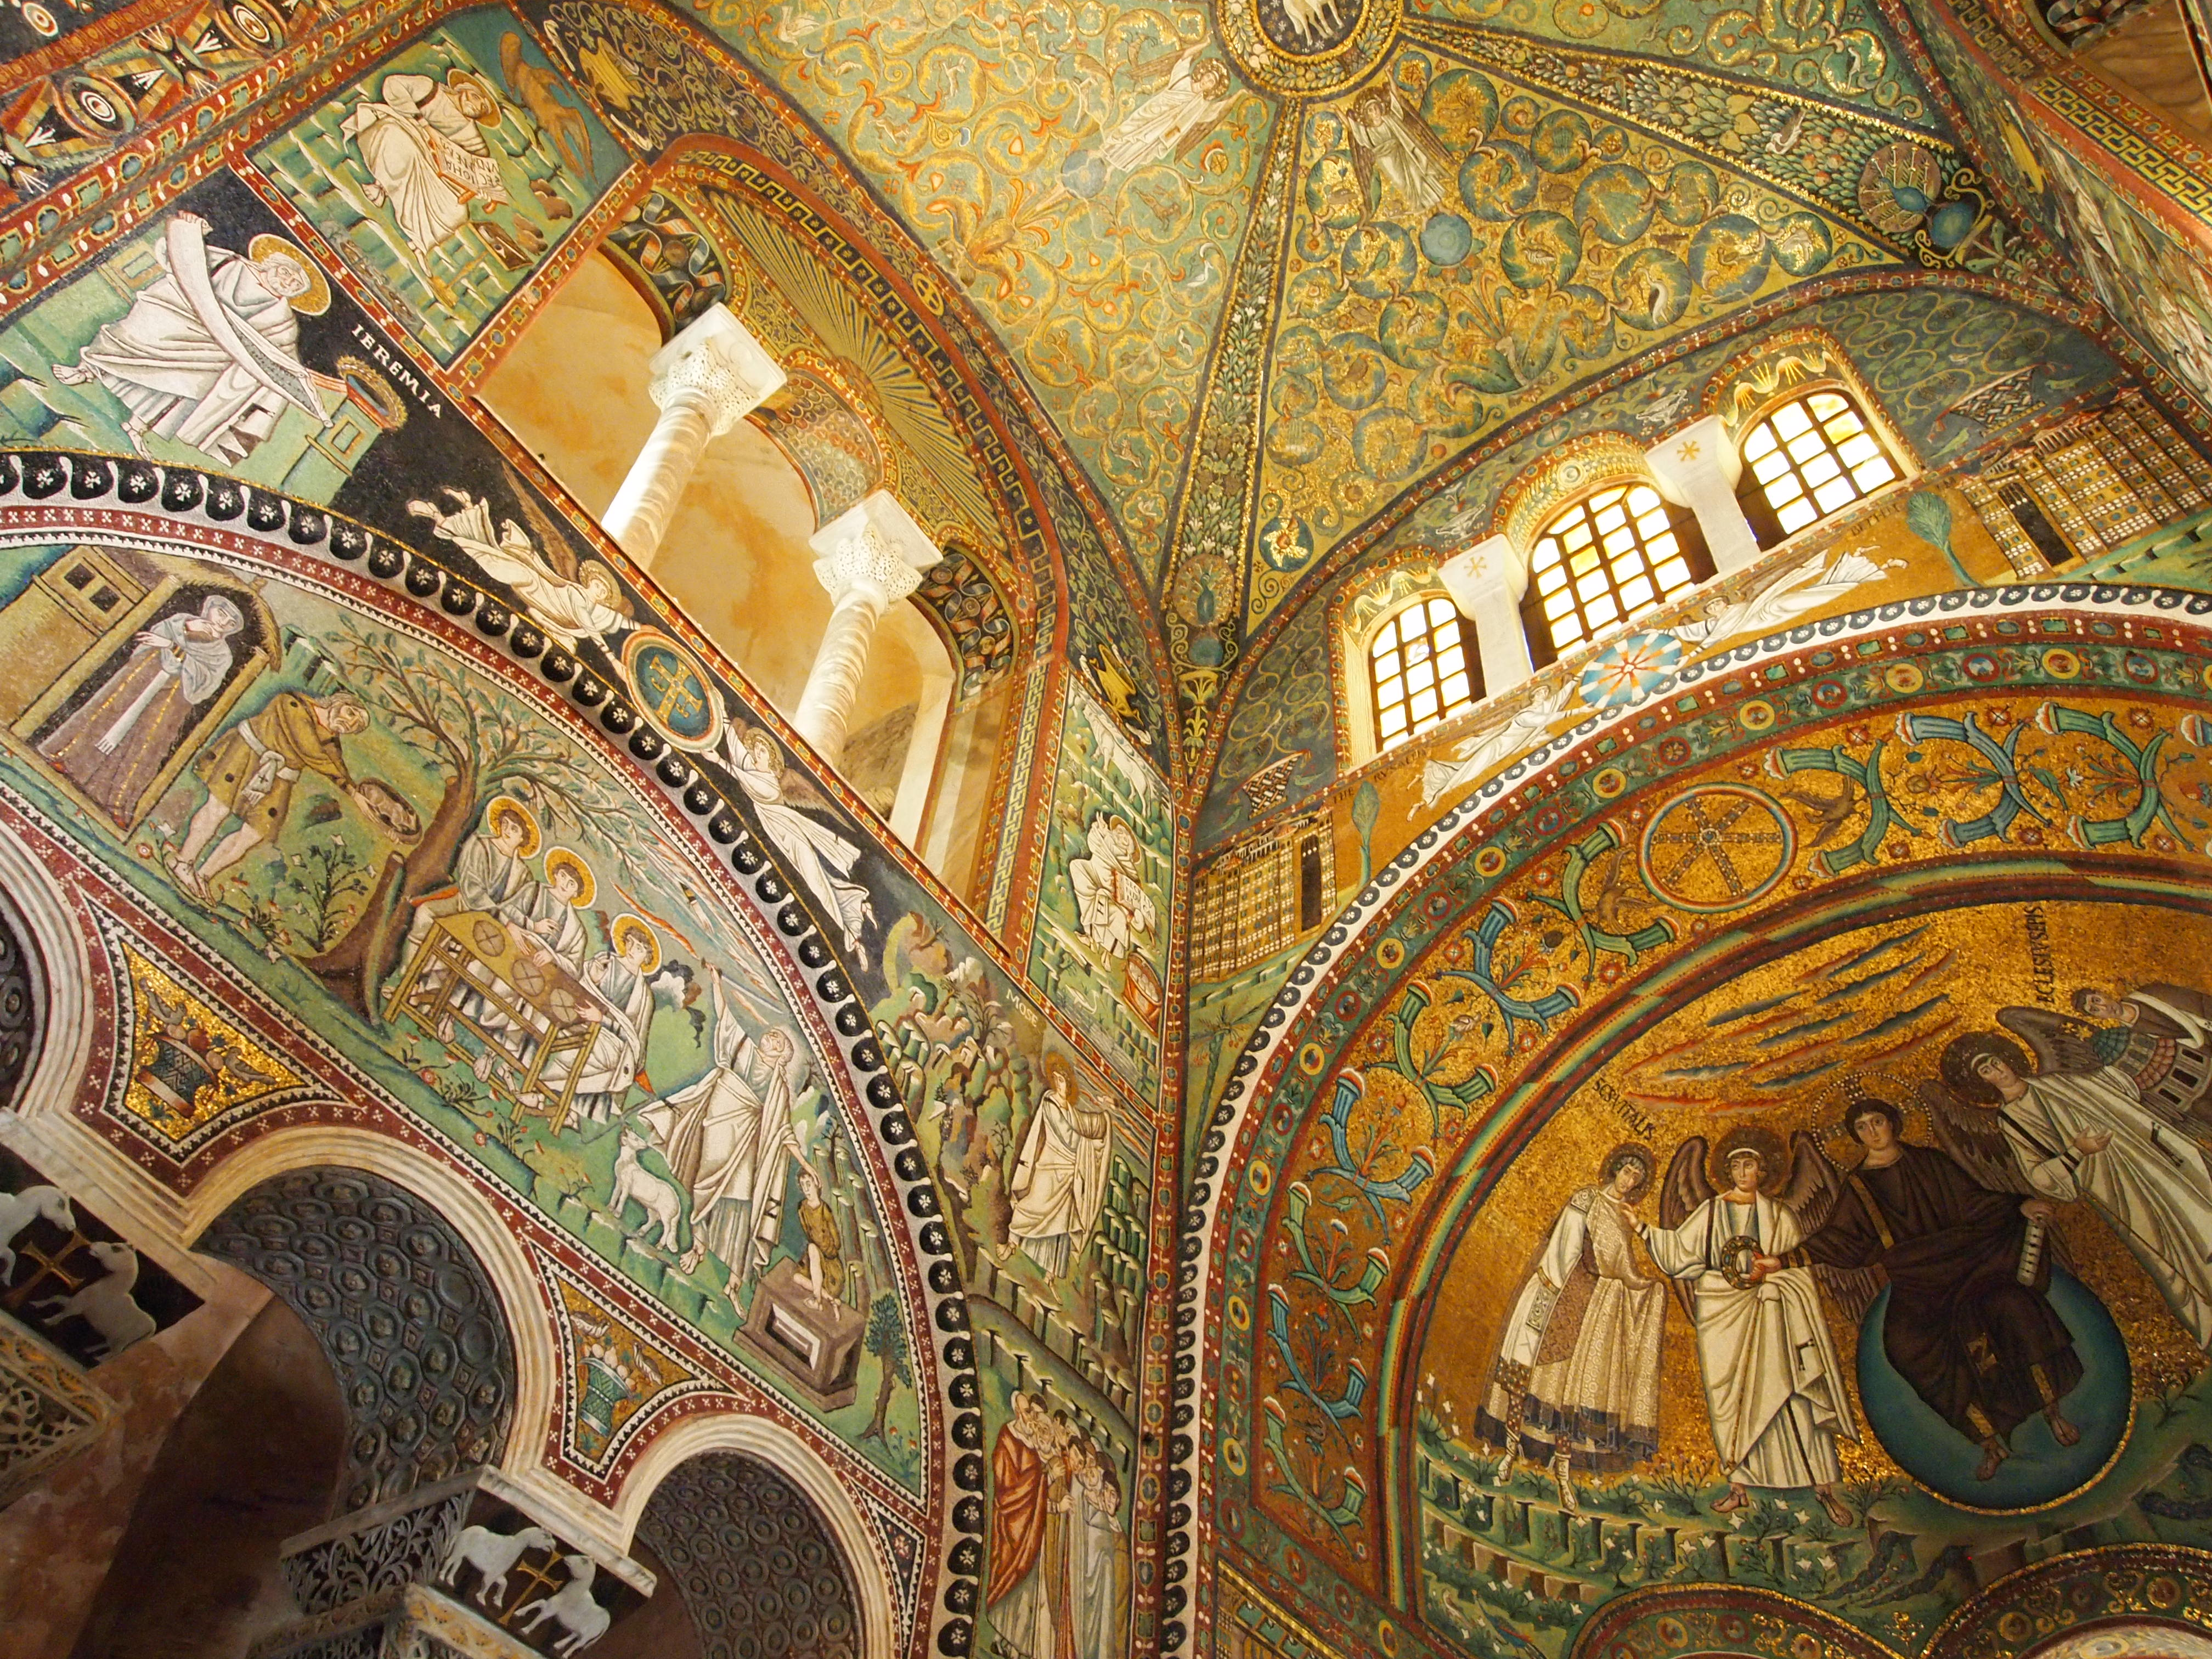 The Three Best Places To View Mosaic Art In Ravenna